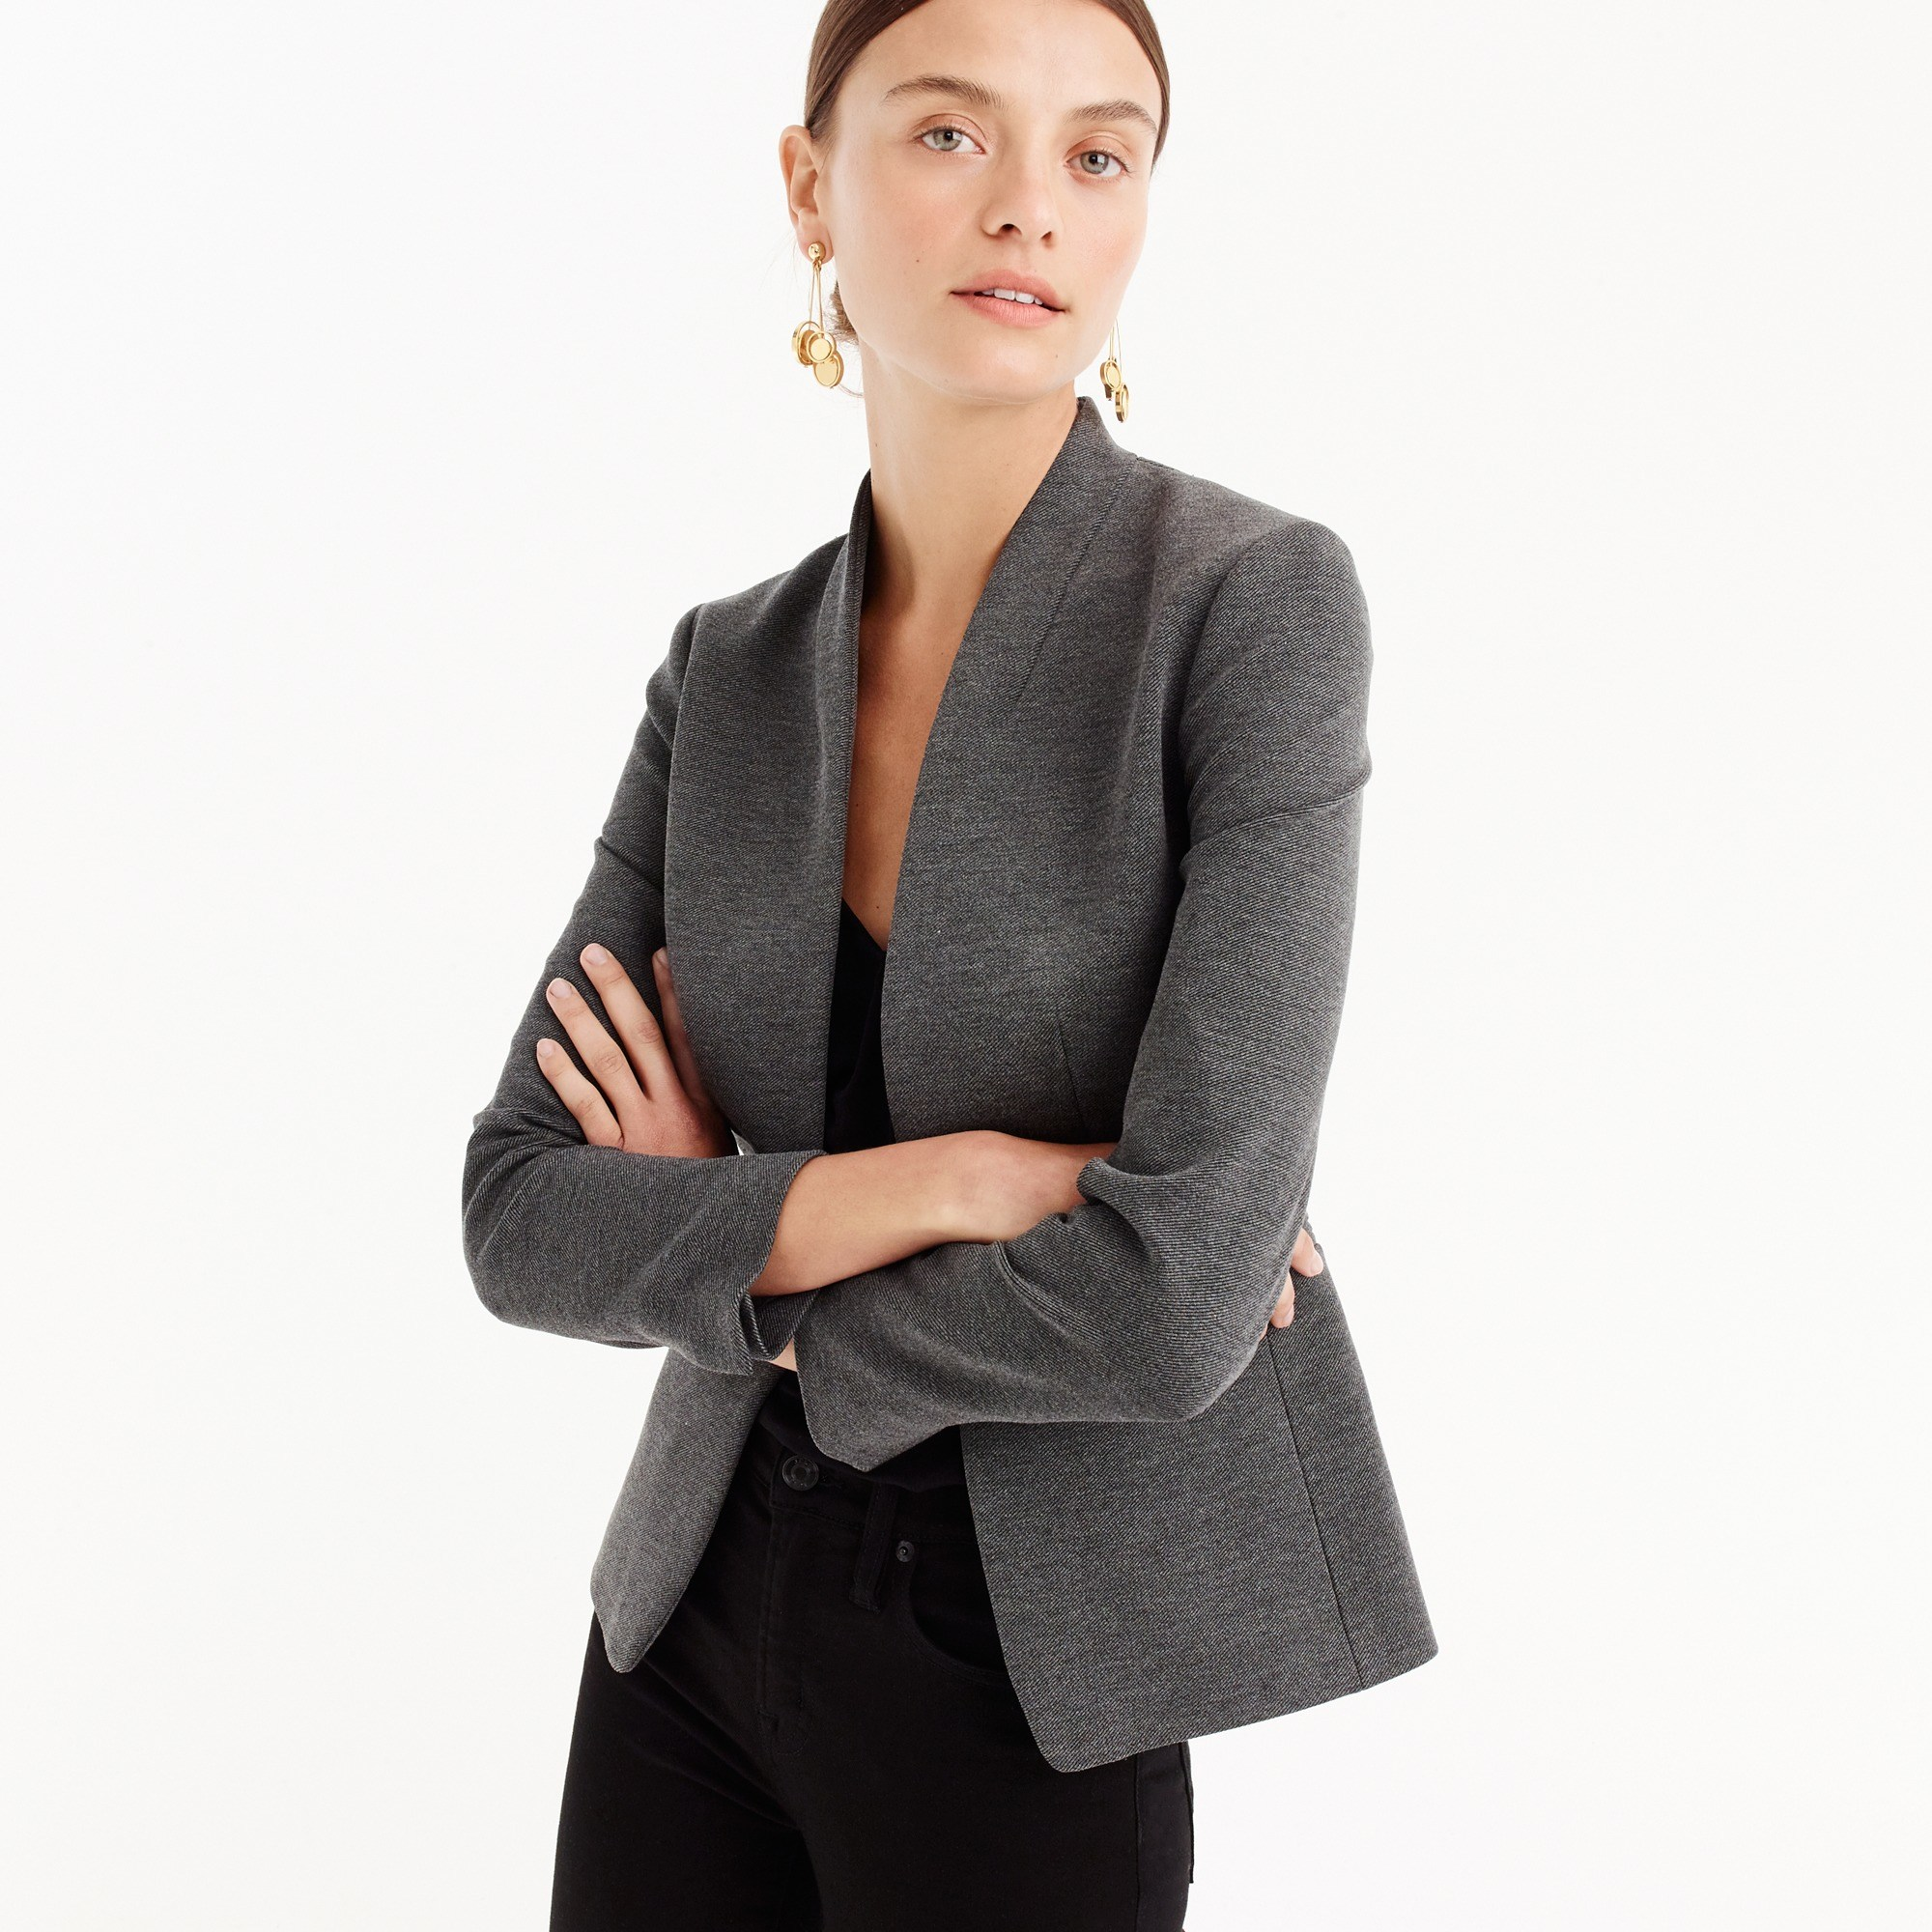 Women's Blazer chic in business and leisure